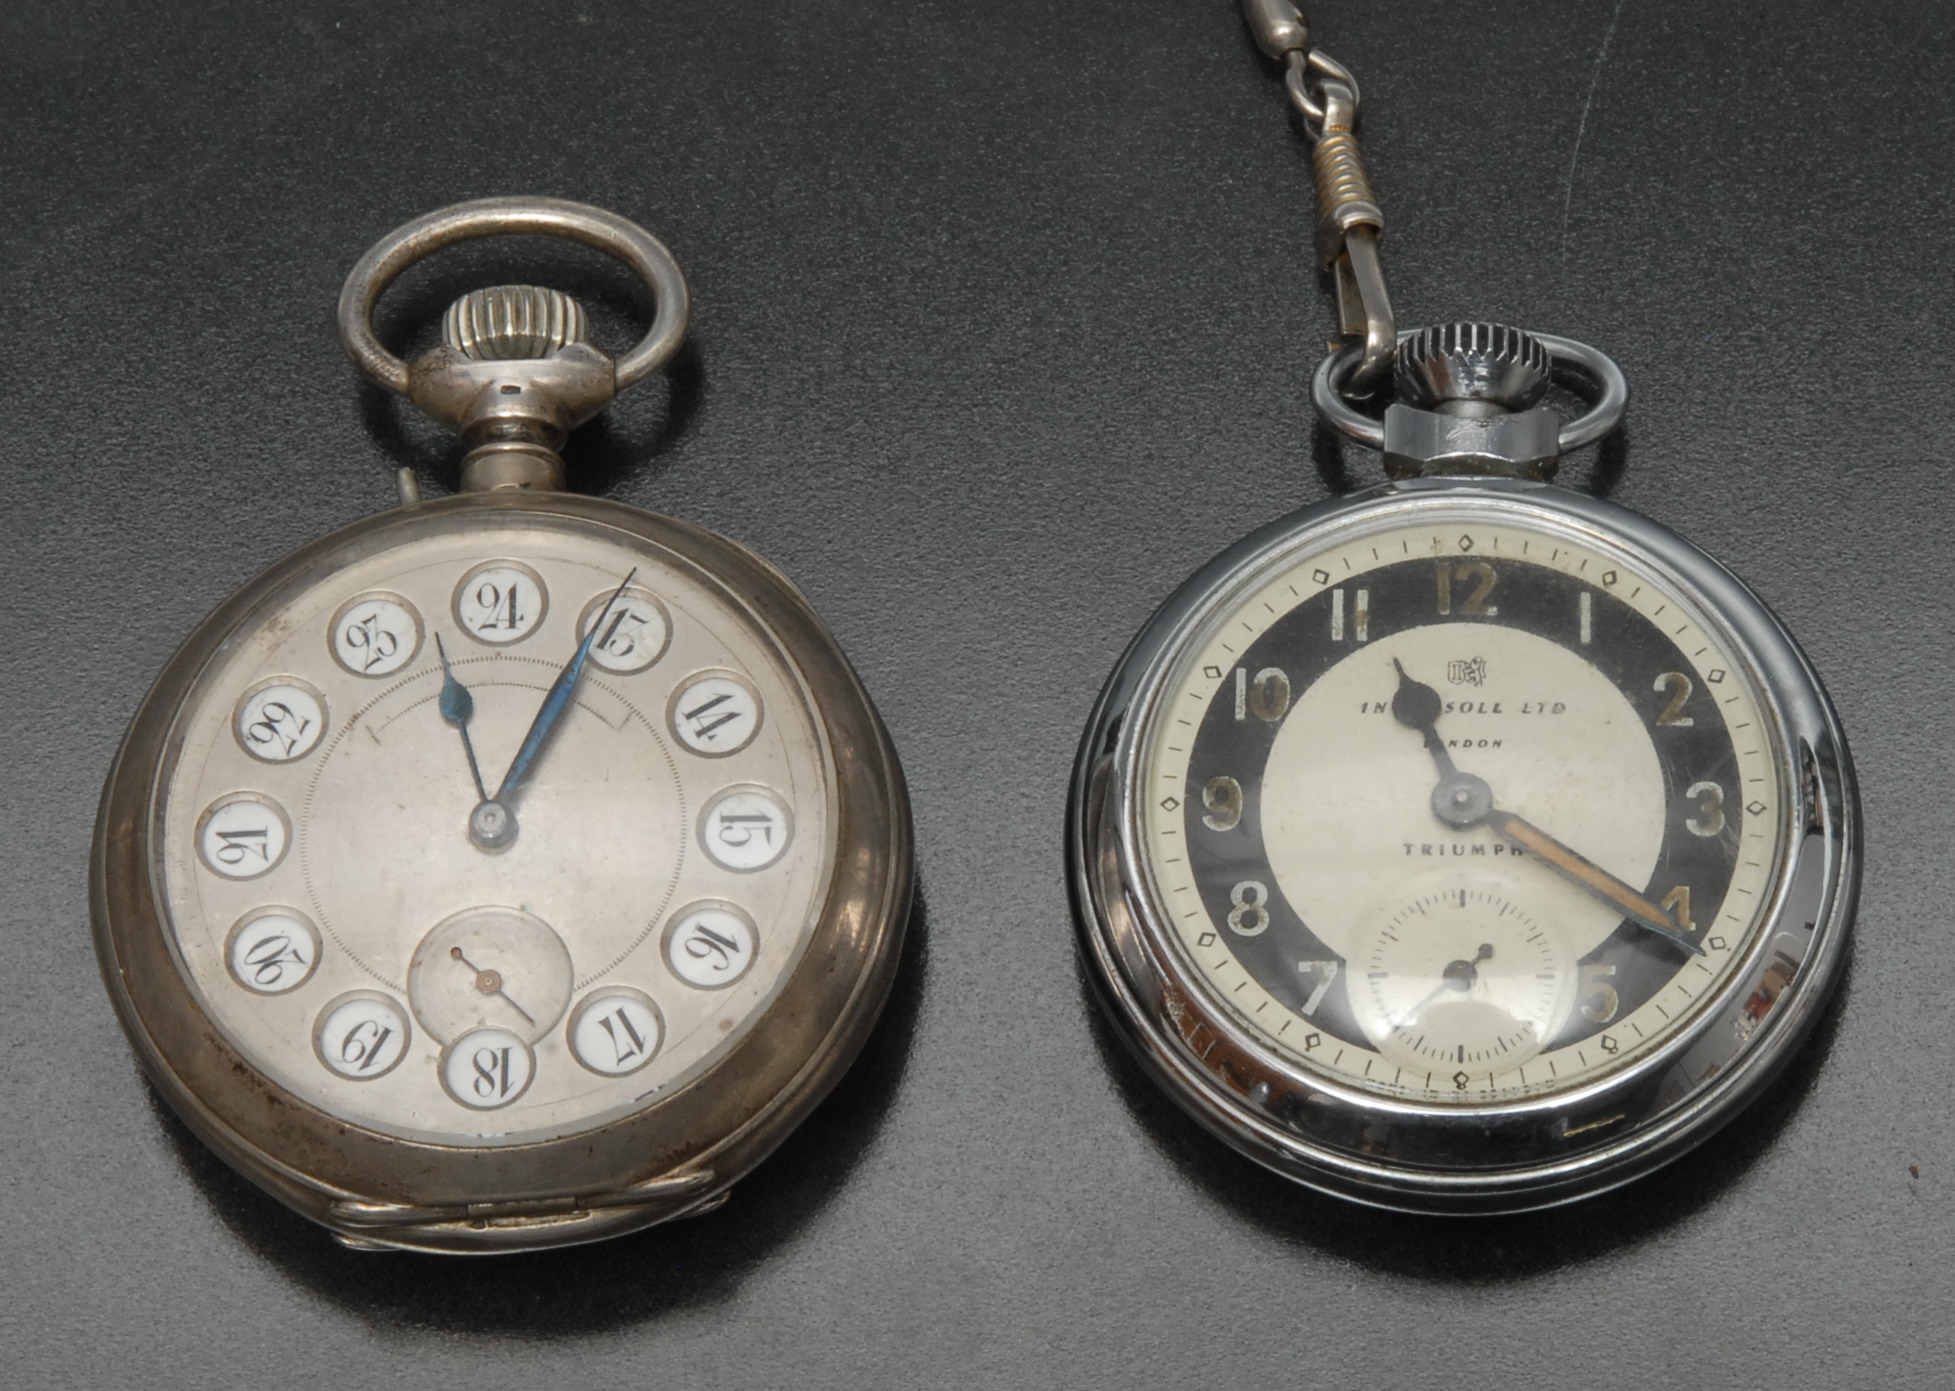 Lot 3003 - Watches - An unusual continental silver pocket watch, stamped 800,